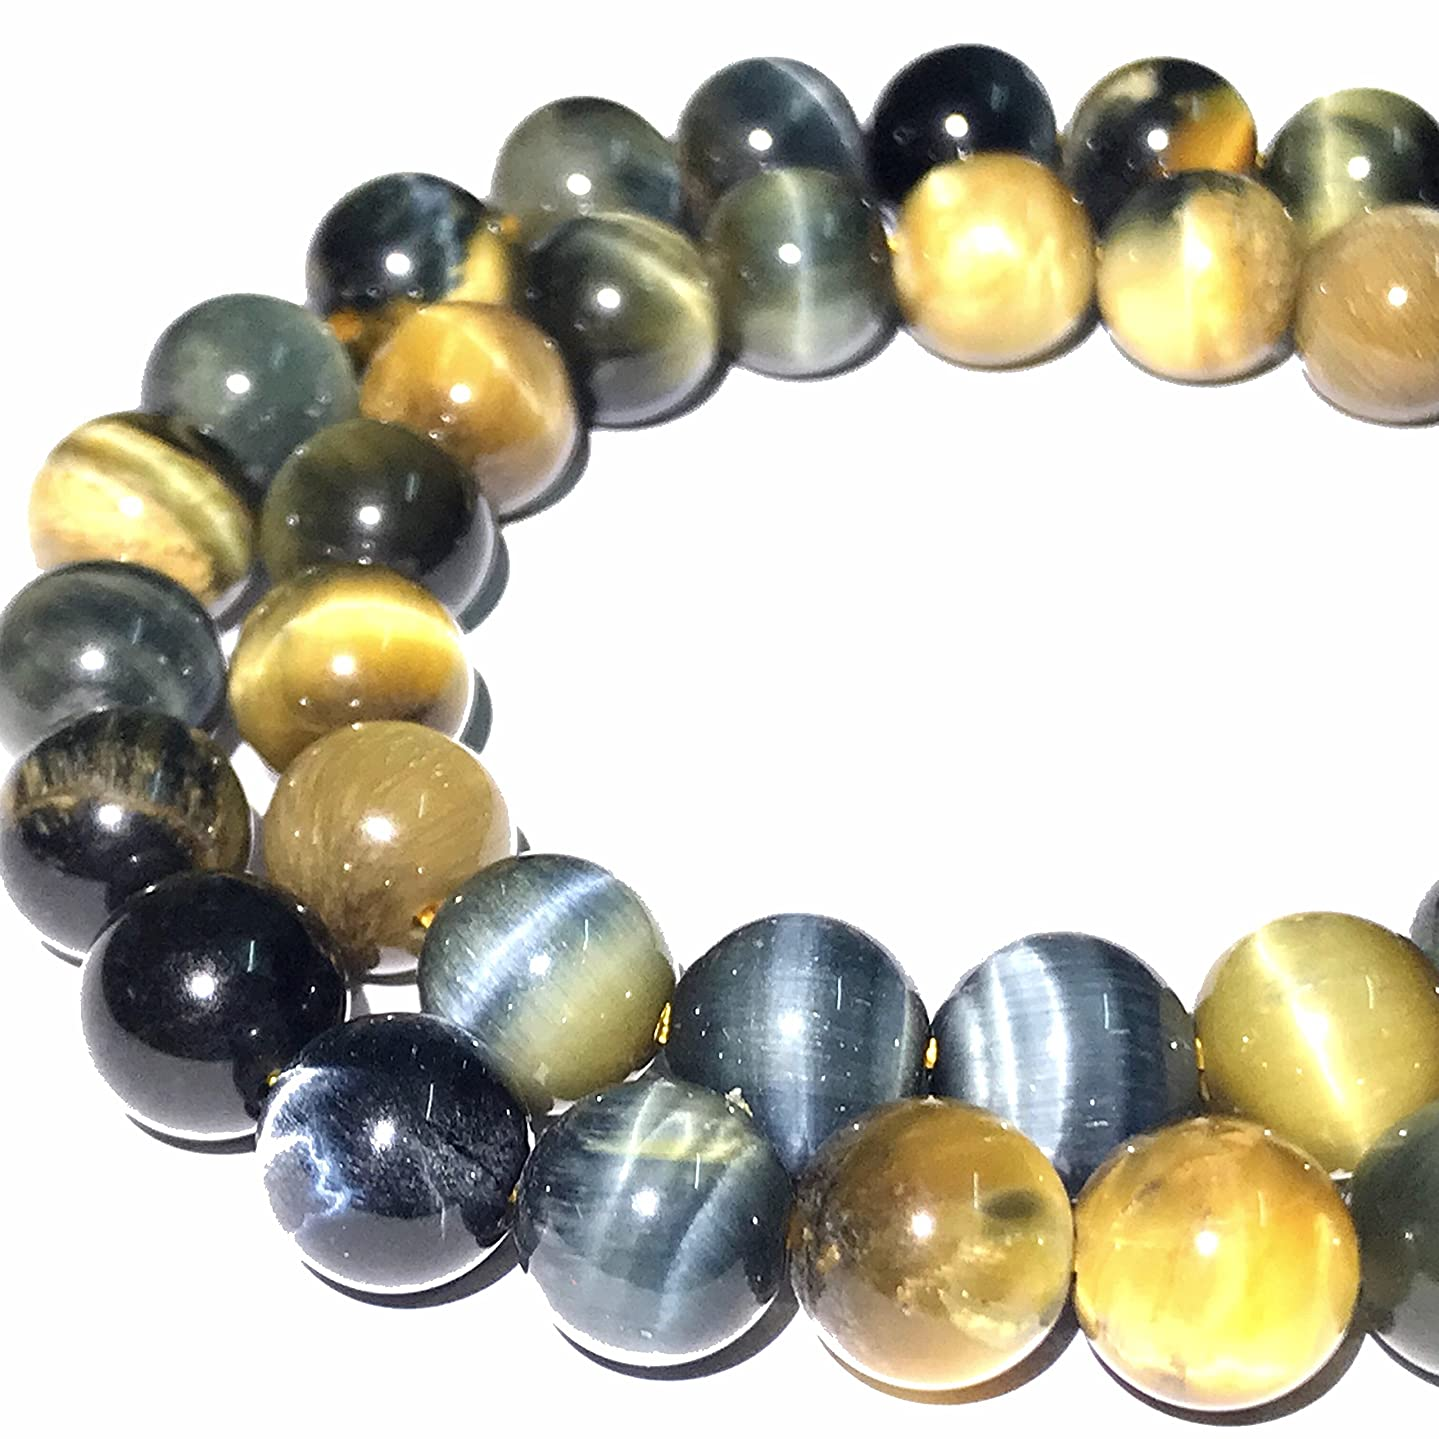 [ABCgems] African Blue Tiger Eye (Beautiful Flash- Exquisite Matrix) Tiny 6mm Smooth Round Beads for Beading & Jewelry Making